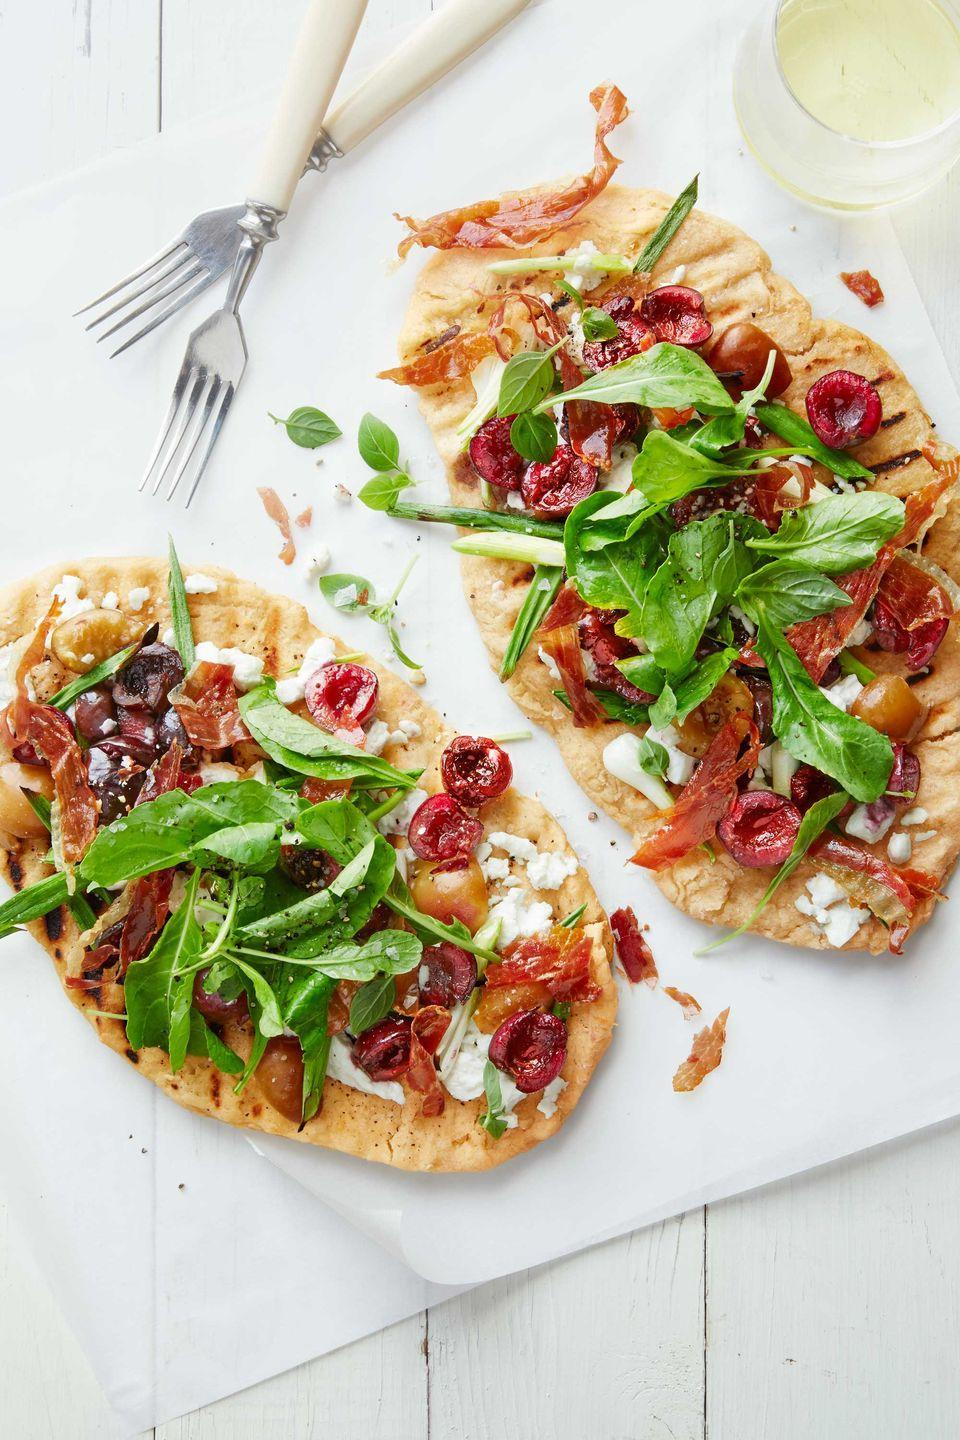 "<p>These crispy flatbreads achieve the perfect combo of salty, tangy and sweet in every bite.</p><p><a href=""https://www.countryliving.com/food-drinks/recipes/a38953/cherry-prosciutto-grilled-pizzas-recipe/"" rel=""nofollow noopener"" target=""_blank"" data-ylk=""slk:Get the recipe."" class=""link rapid-noclick-resp""><strong>Get the recipe.</strong></a></p>"